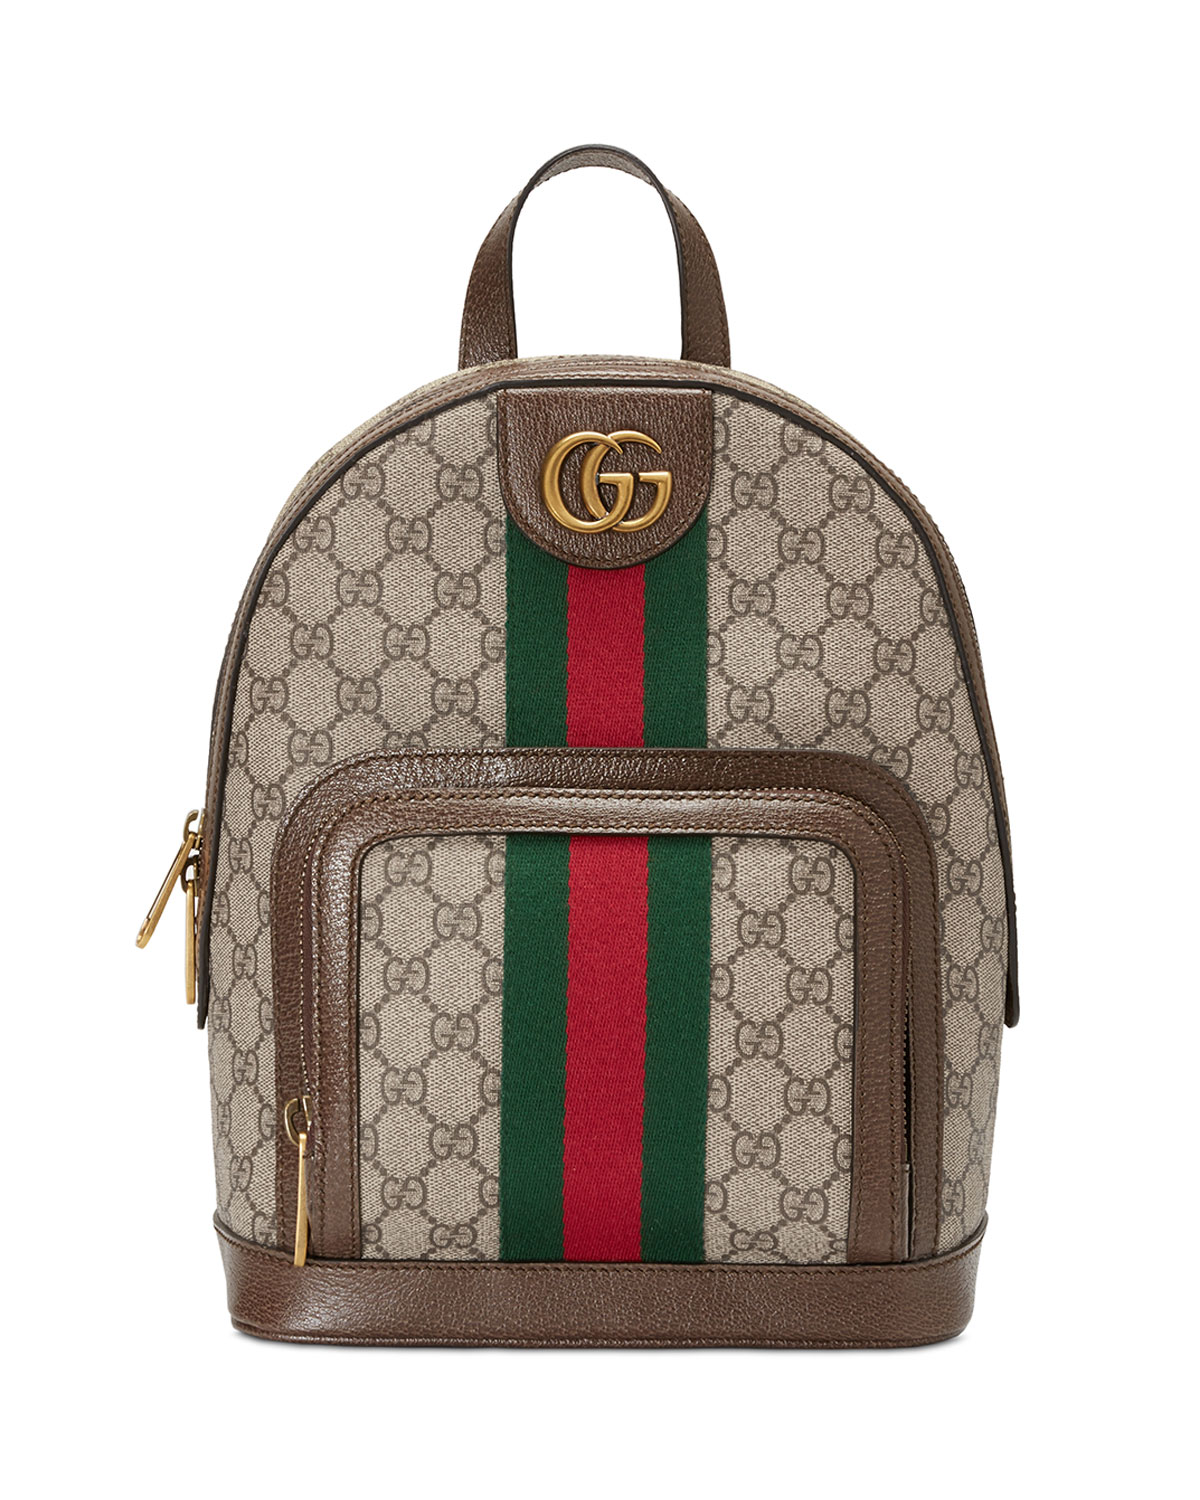 Gucci Ophidia GG Supreme Canvas Backpack